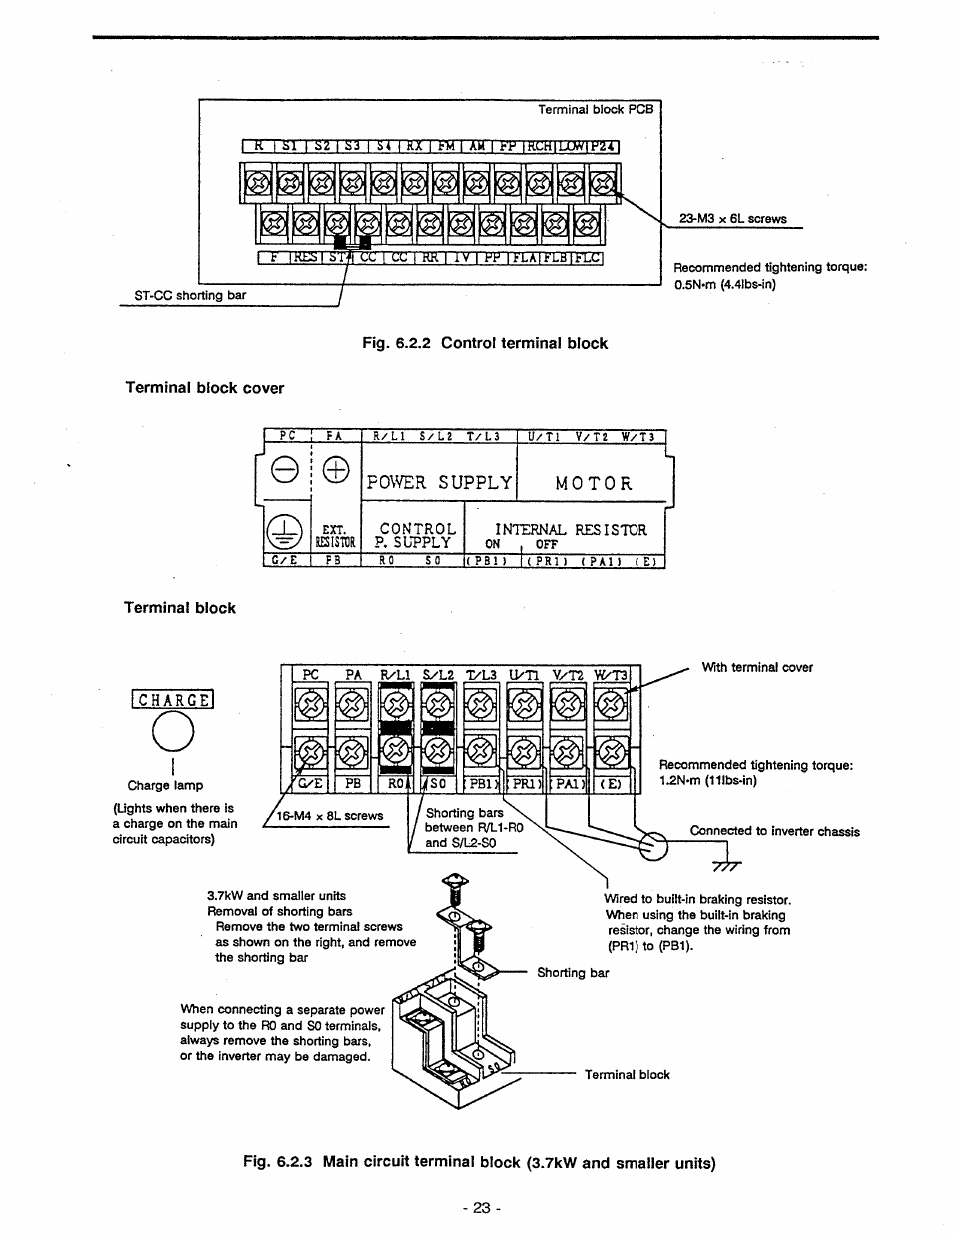 Terminal Block Cover Charge Toshiba Tosvert Vf A5 V F Control Diagram User Manual Page 29 149